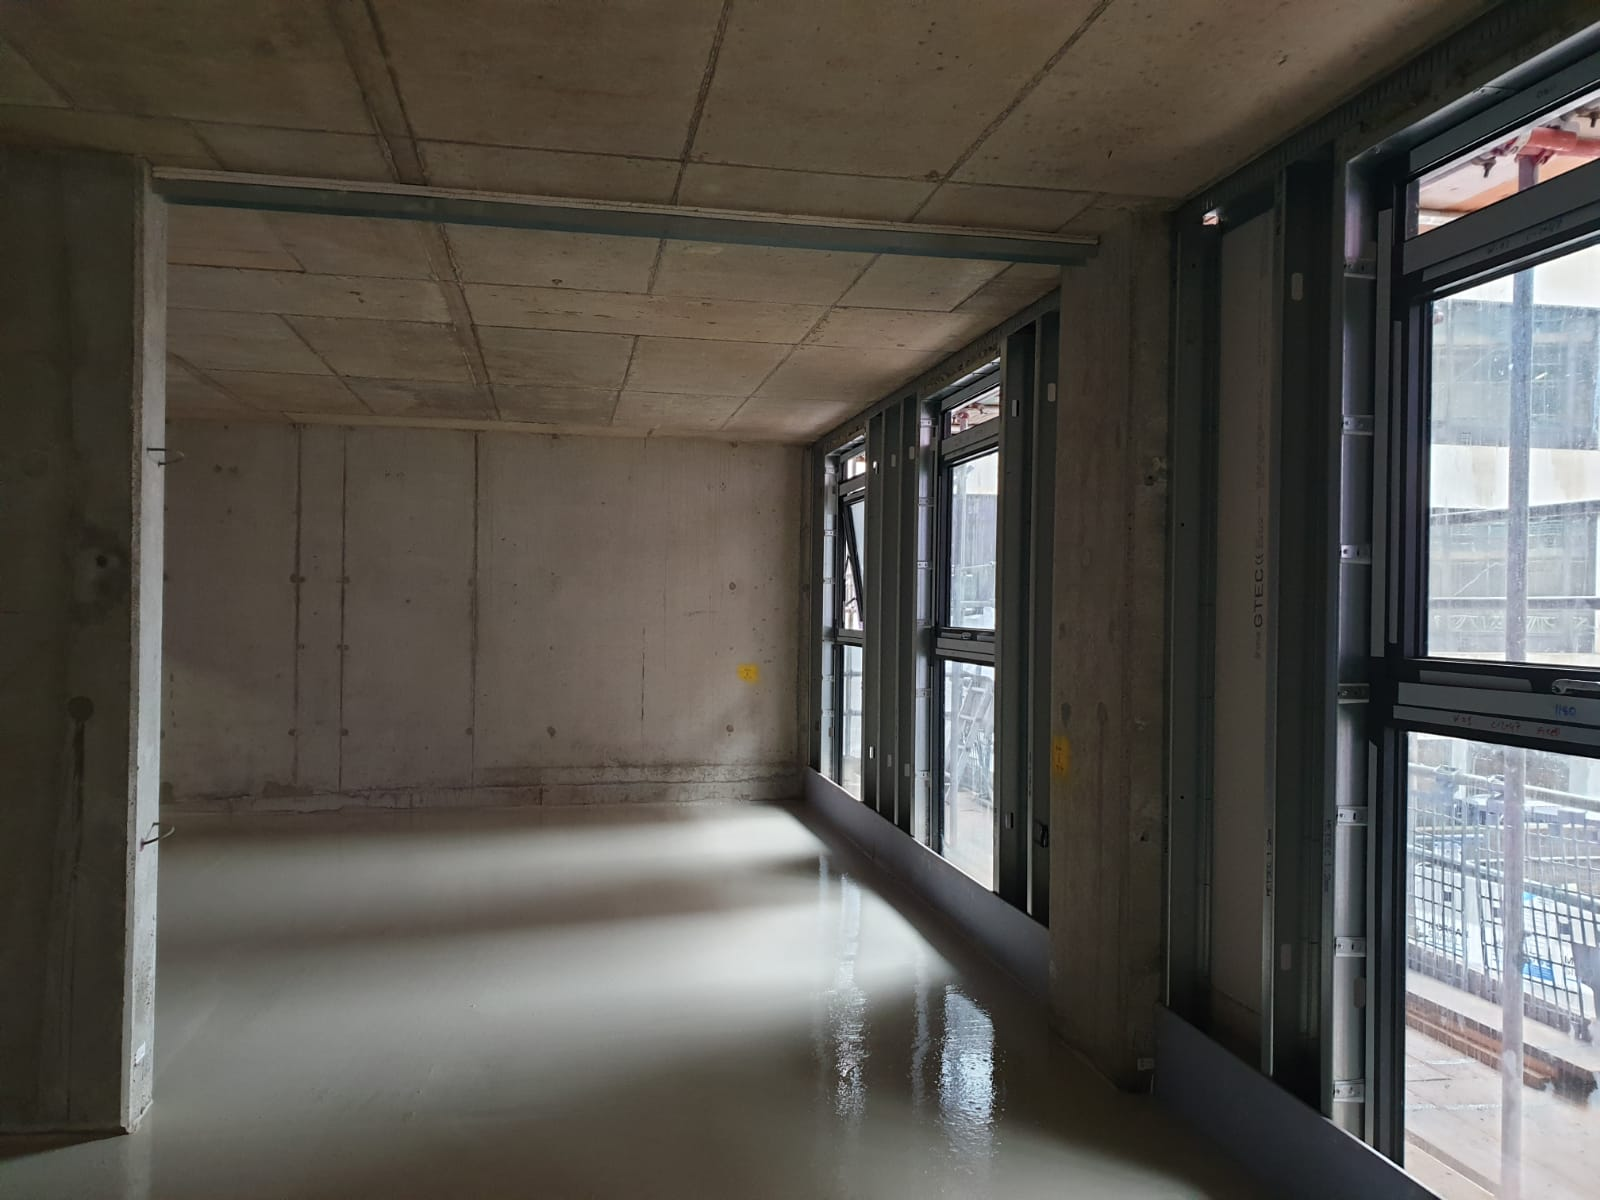 Gypsol TS-20 screed installed in apartment project slough